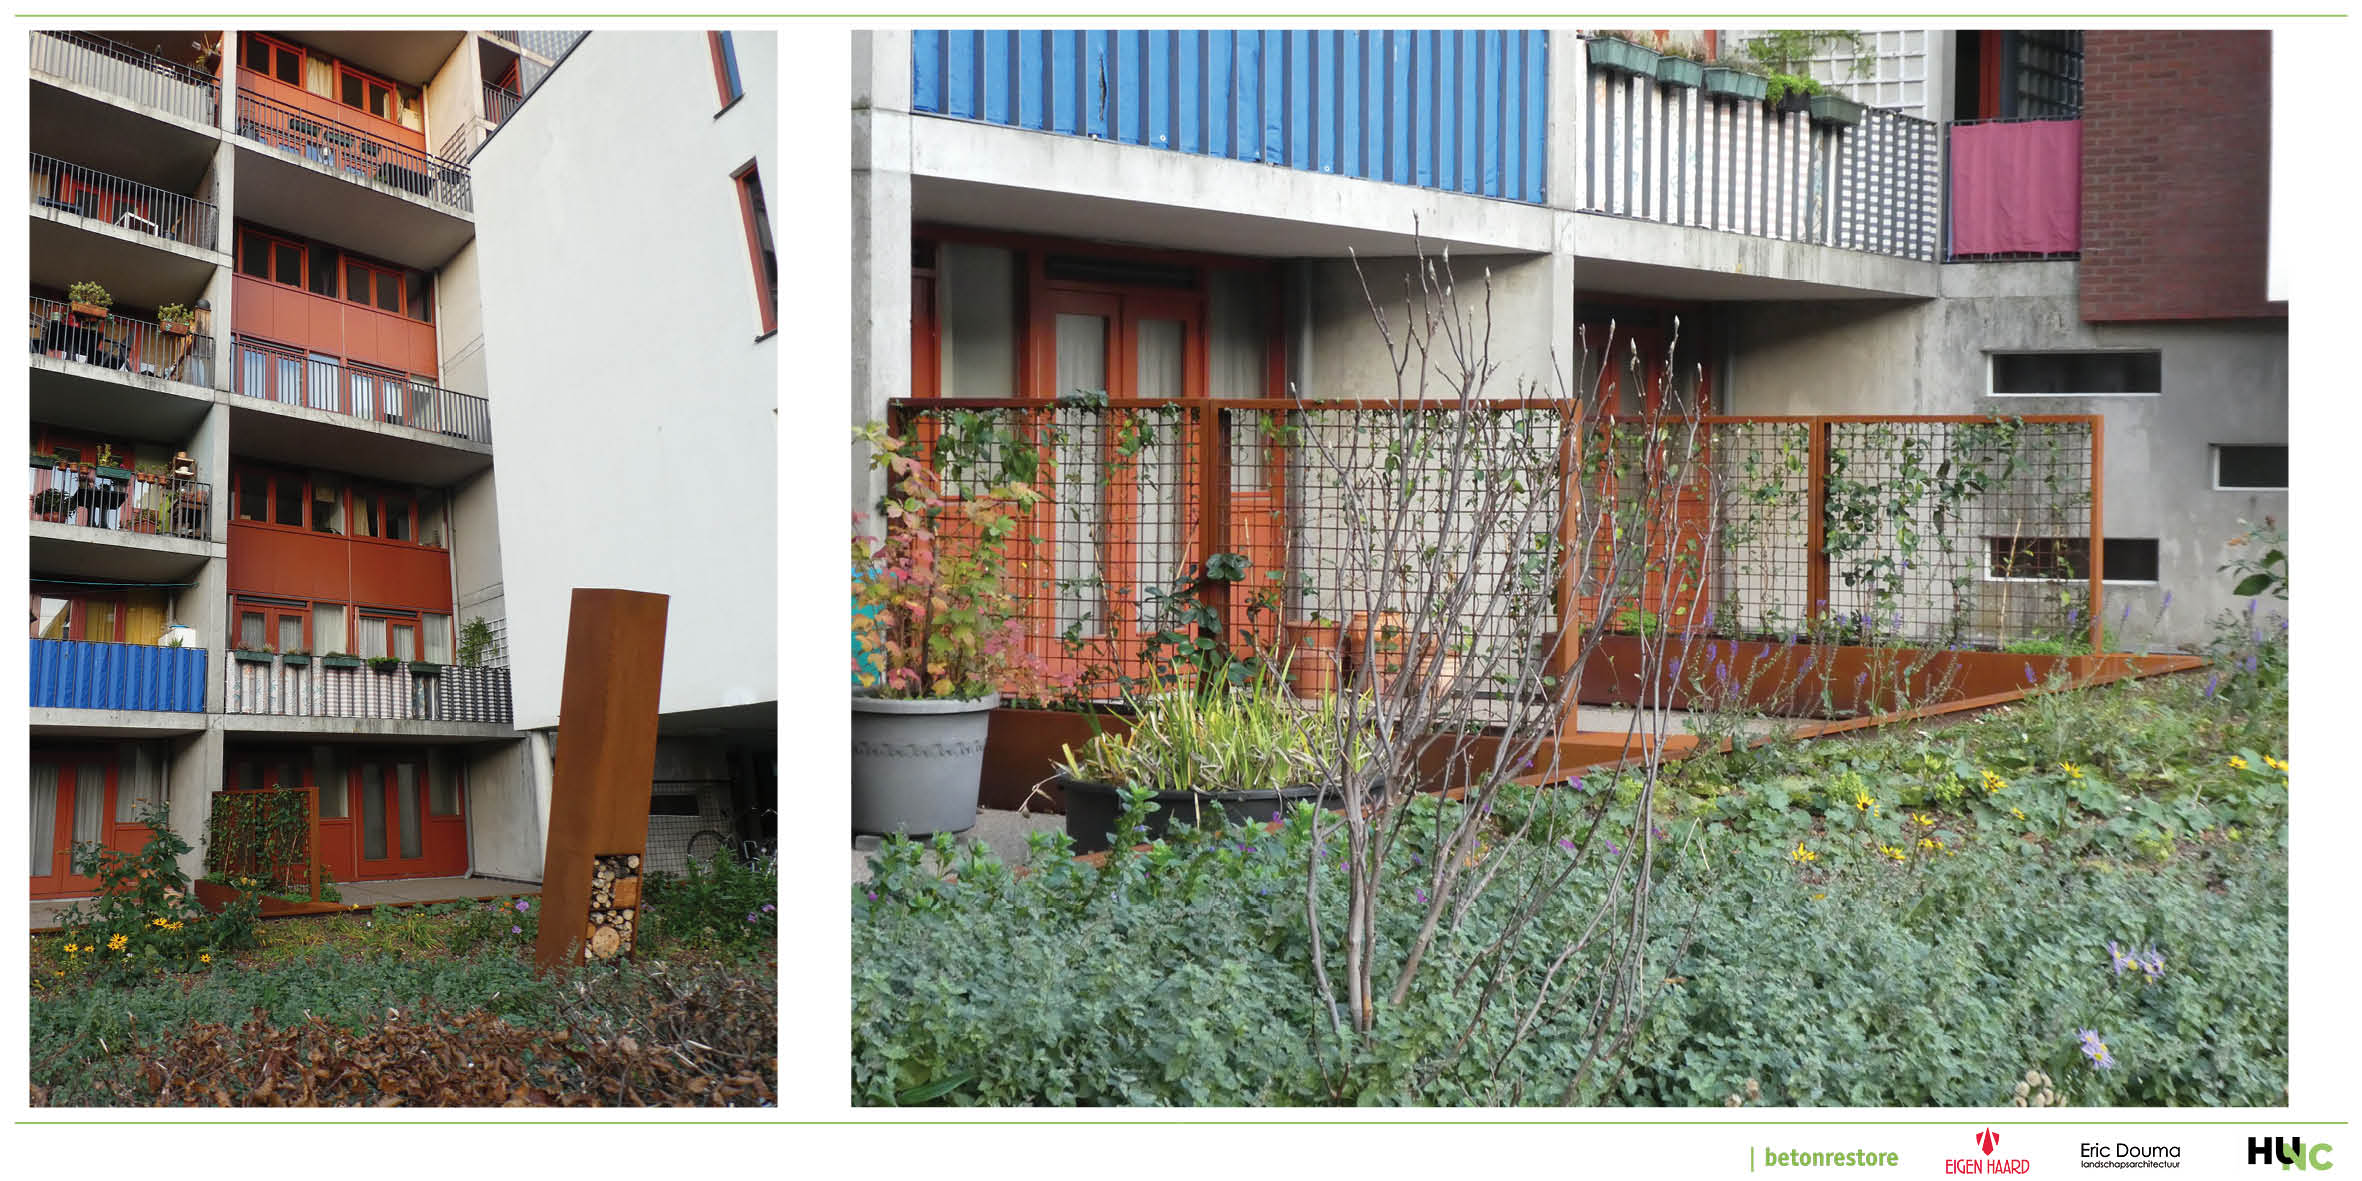 greening the city, special design bird insect house